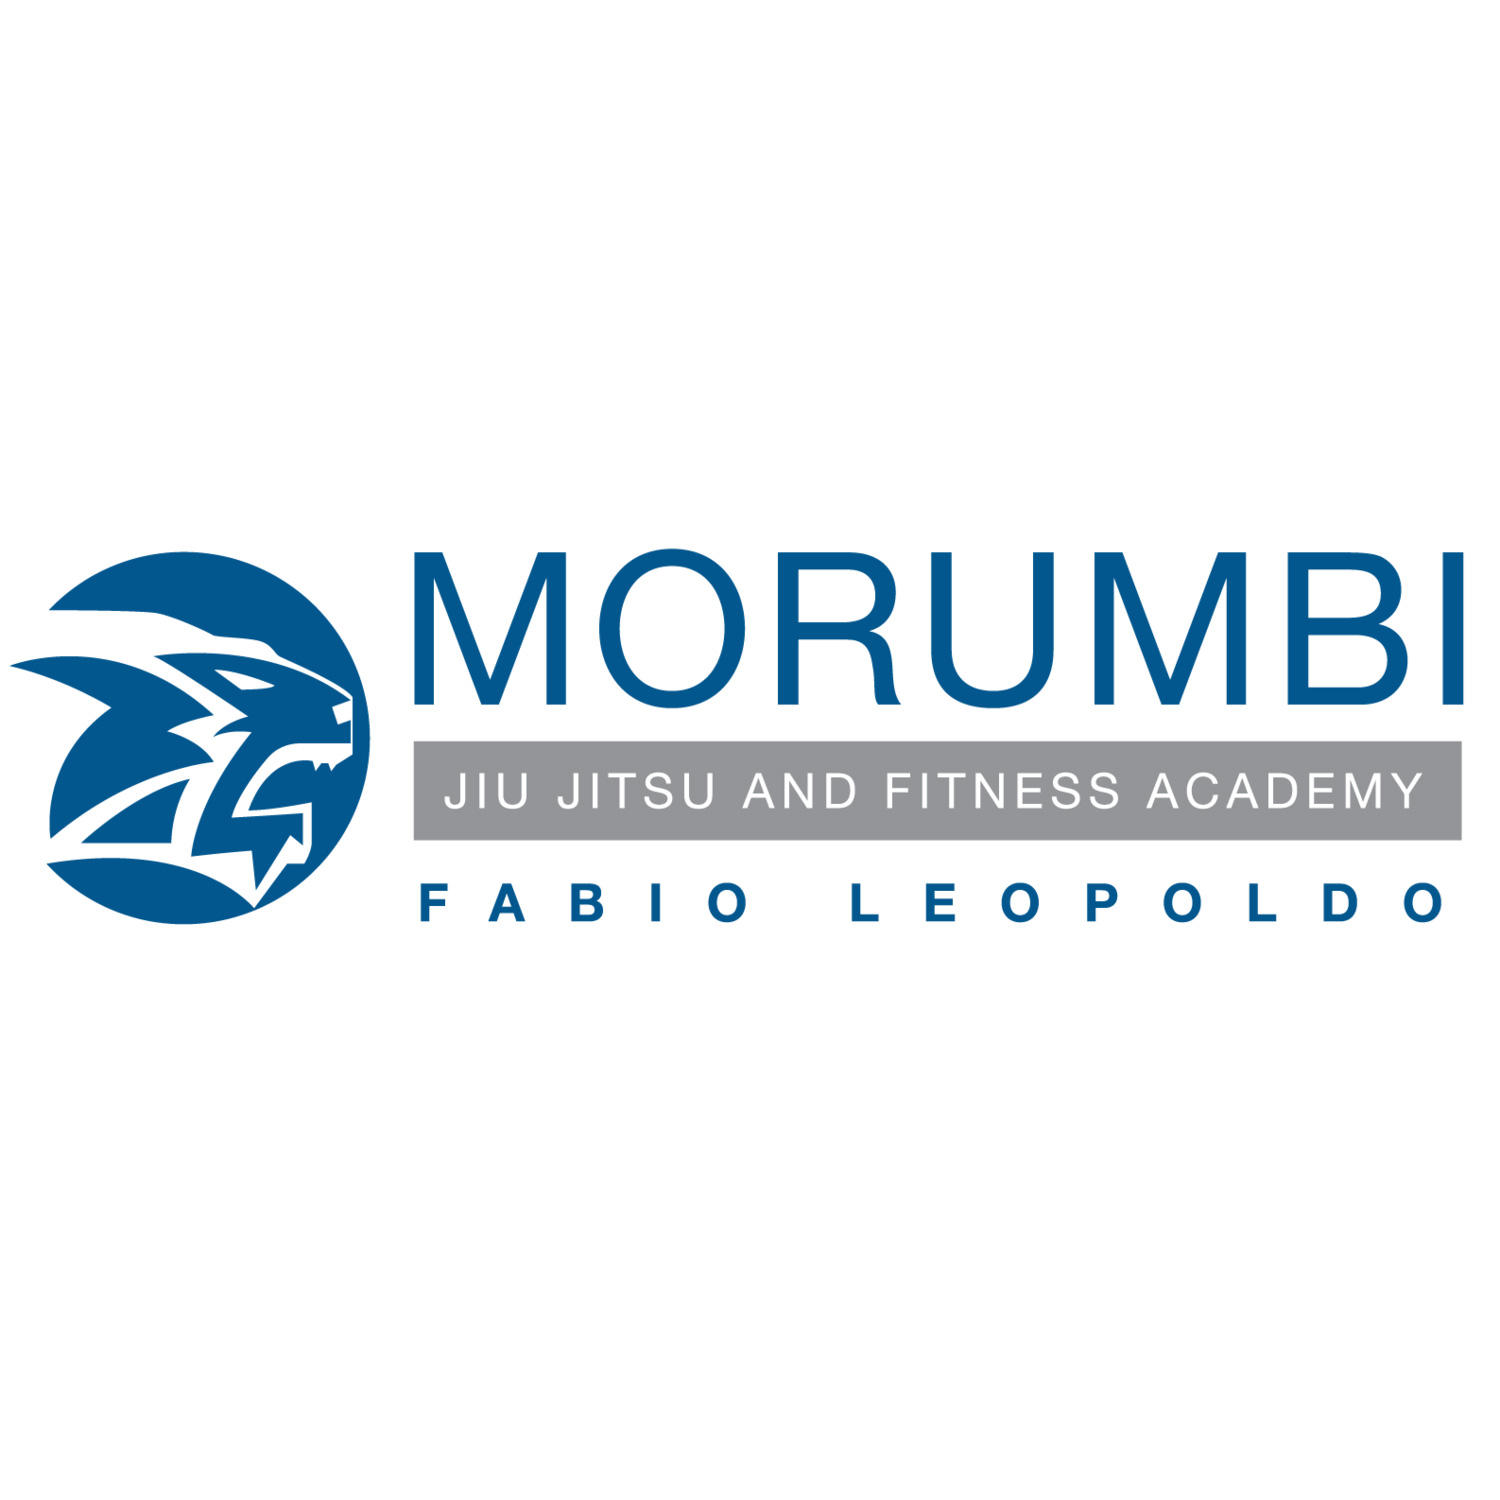 Morumbi Jiu Jitsu & Fitness Academy - Ventura - Ventura, CA - Martial Arts Instruction